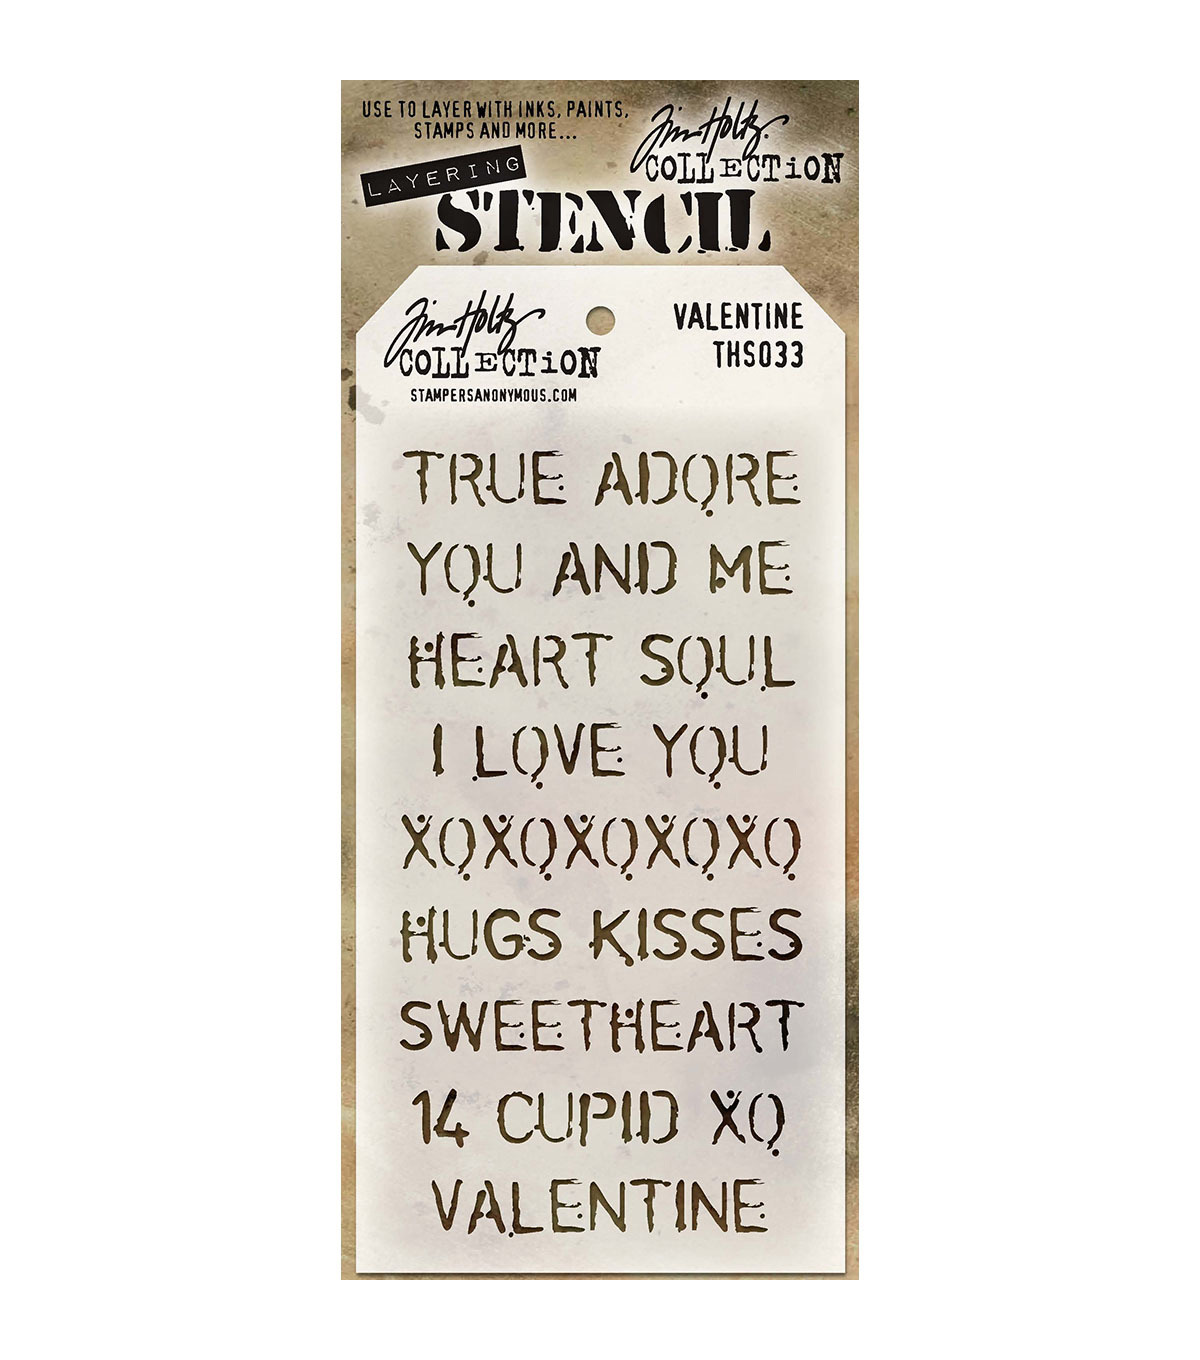 Stampers Anonymous Tim Holtz Valentine Layered Stencil